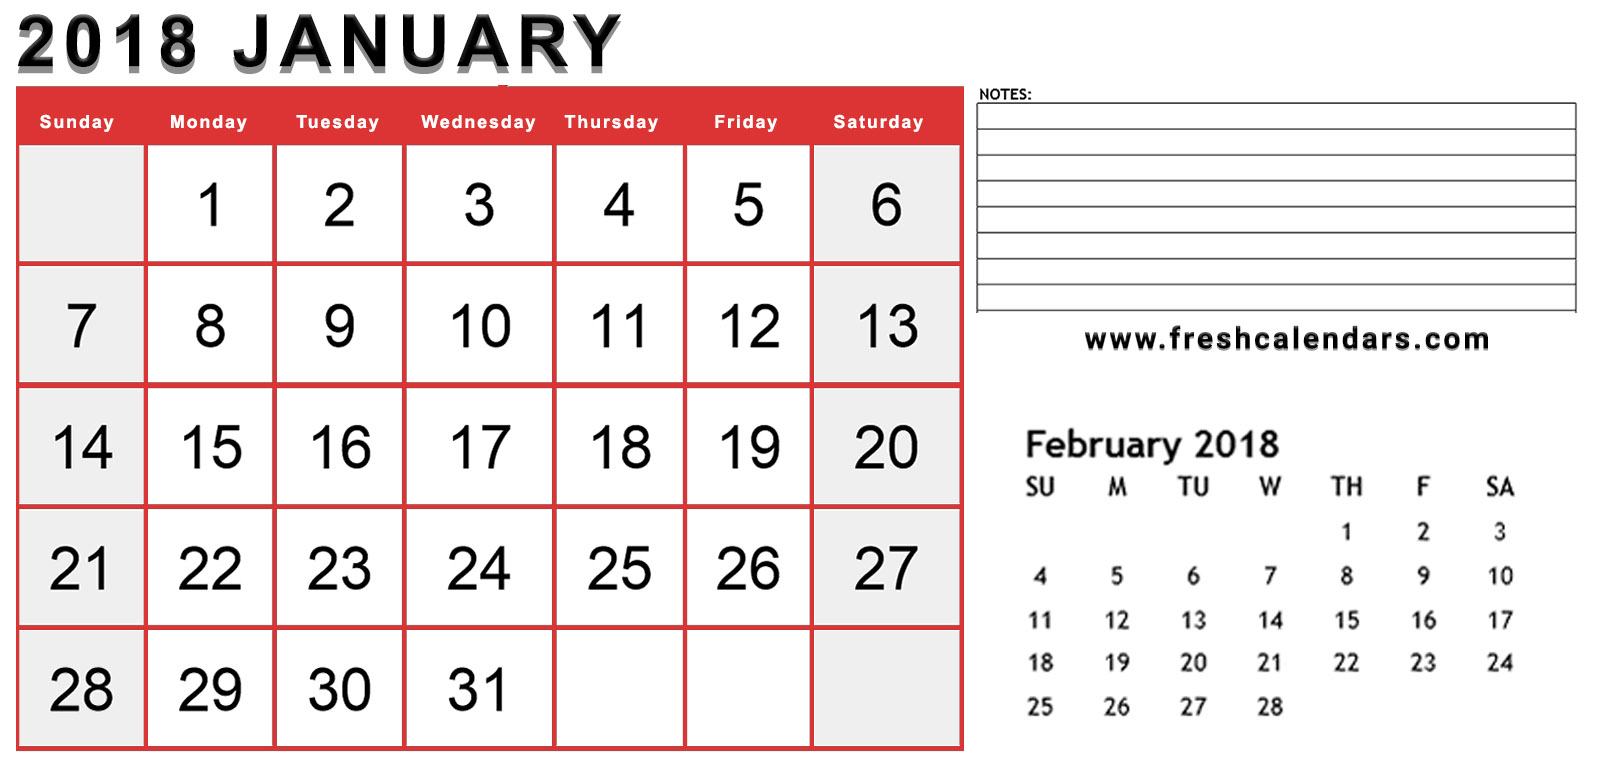 January 2018 Red Calendar 2 Months With Notes